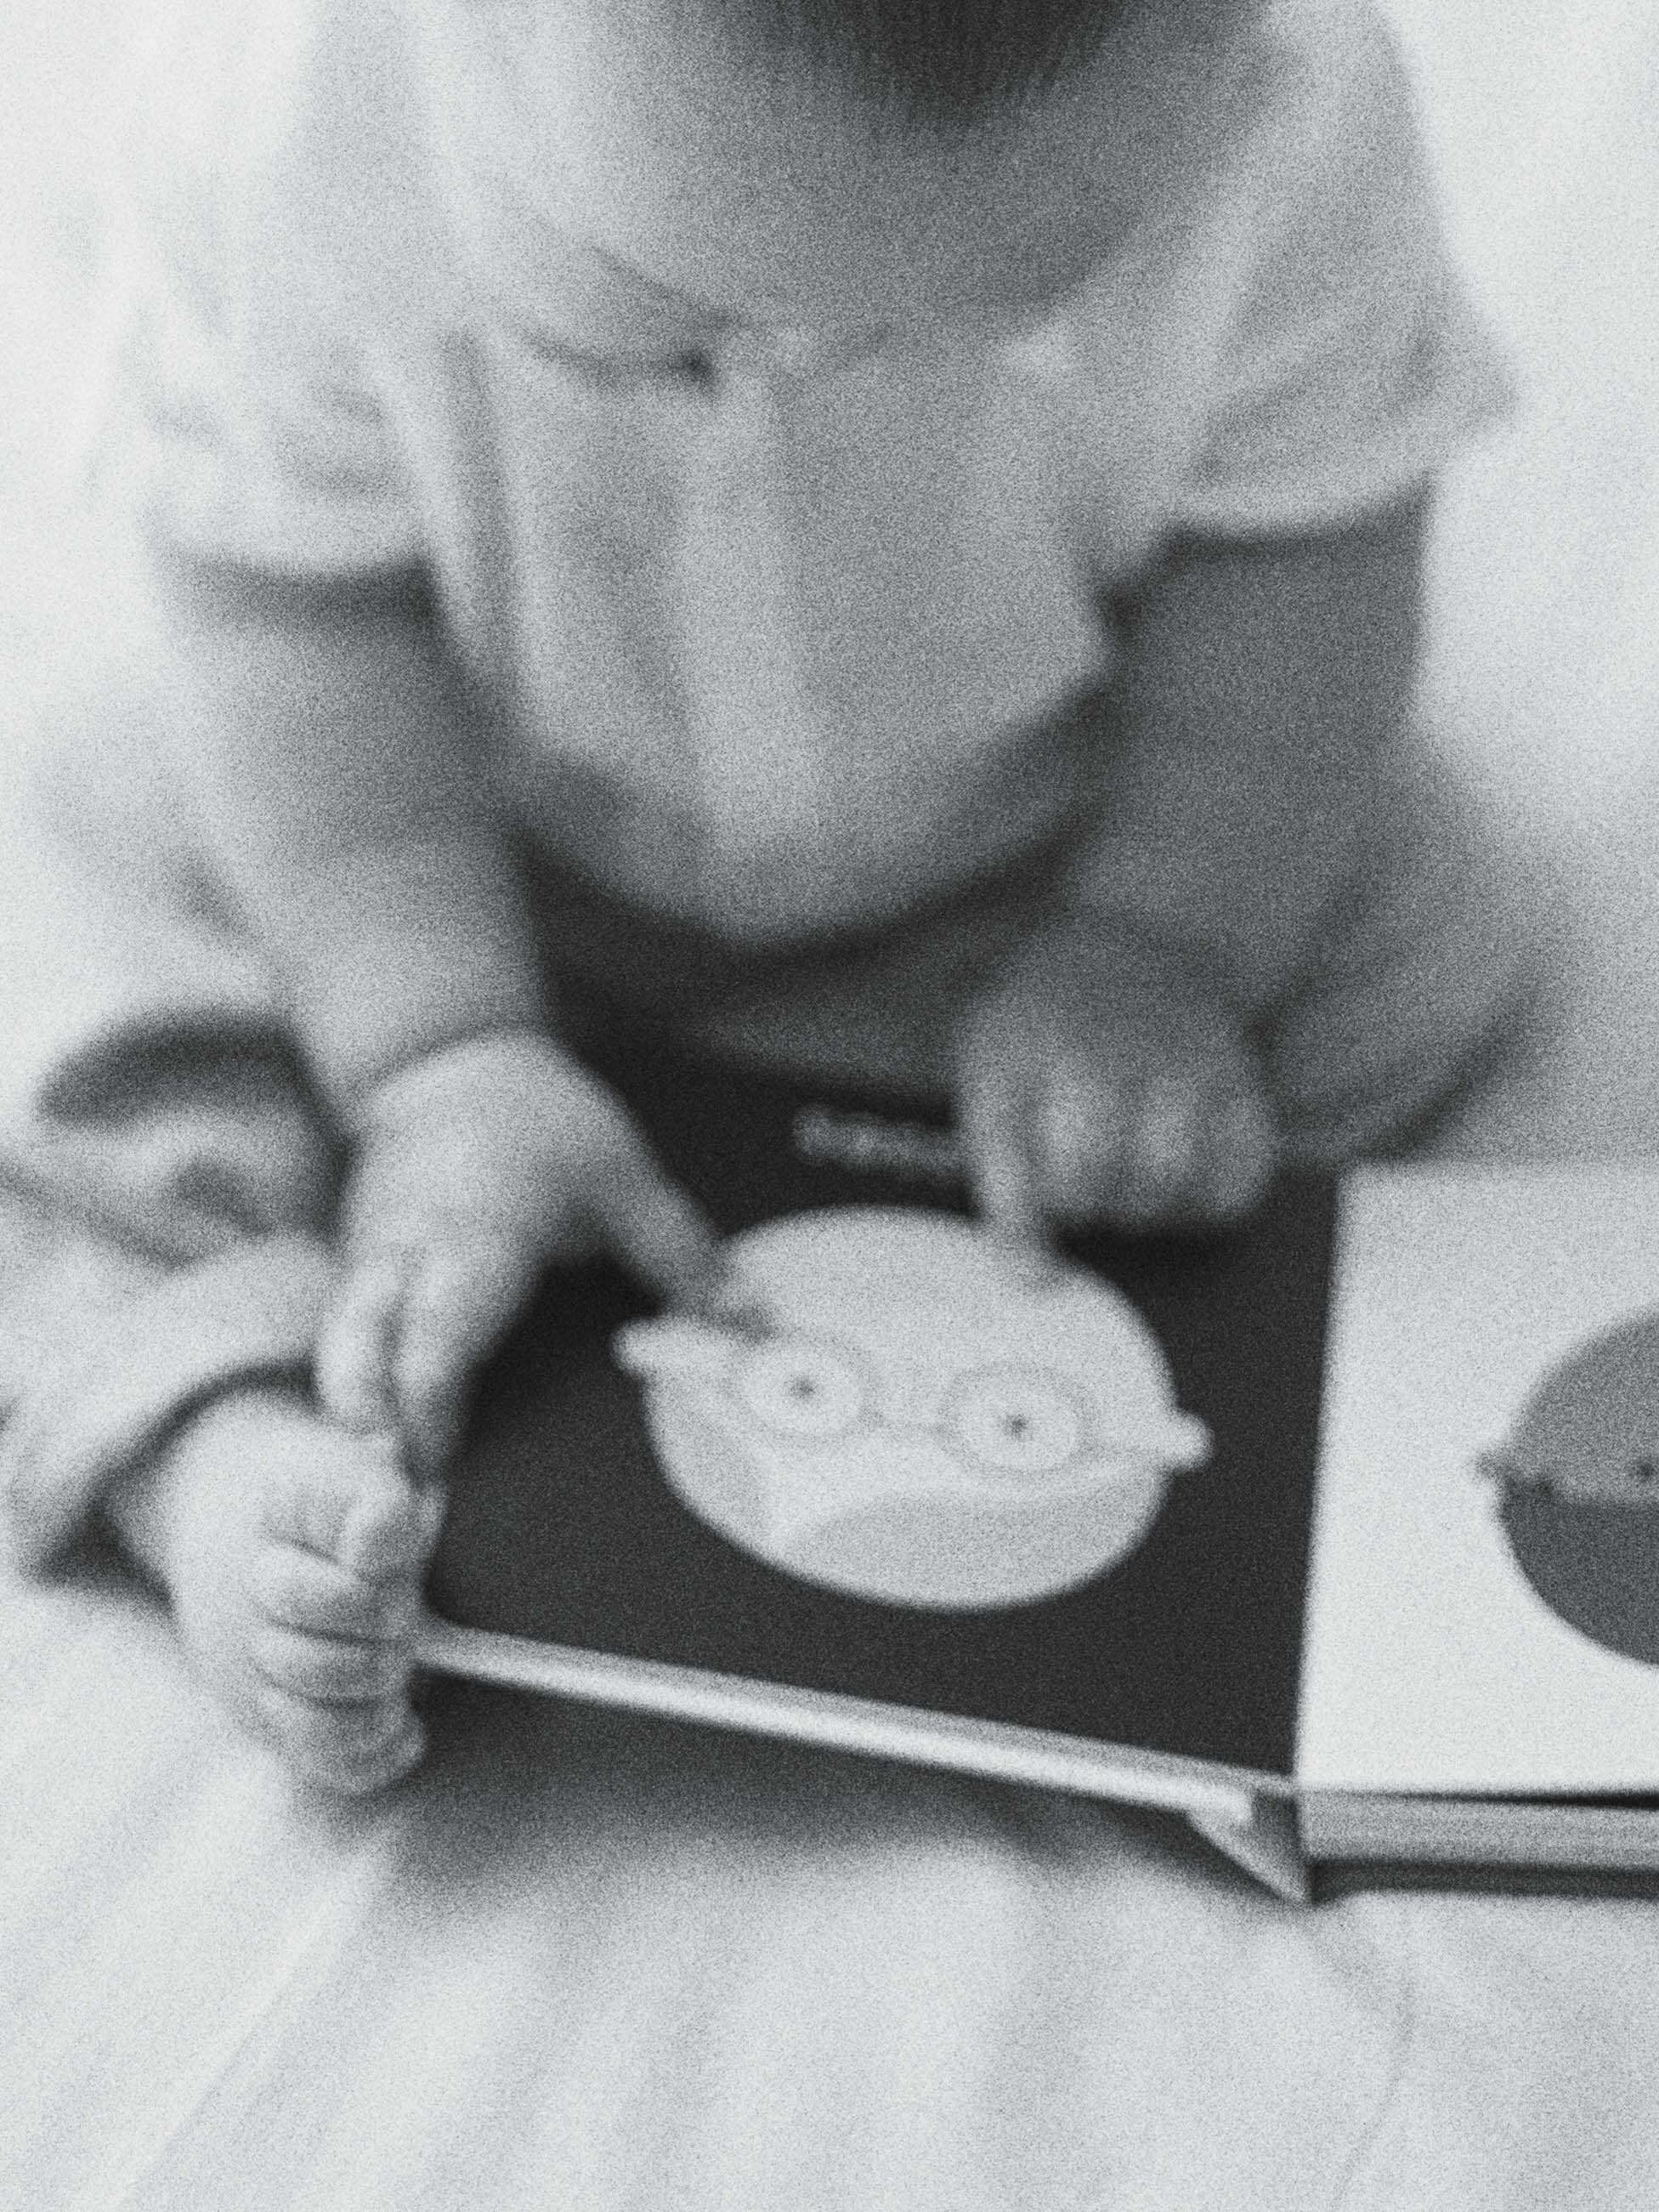 Cody-At Home-Simple-Baby Photography-8 Months Old-Studio June-Film Photography-Jakarta-37.jpg